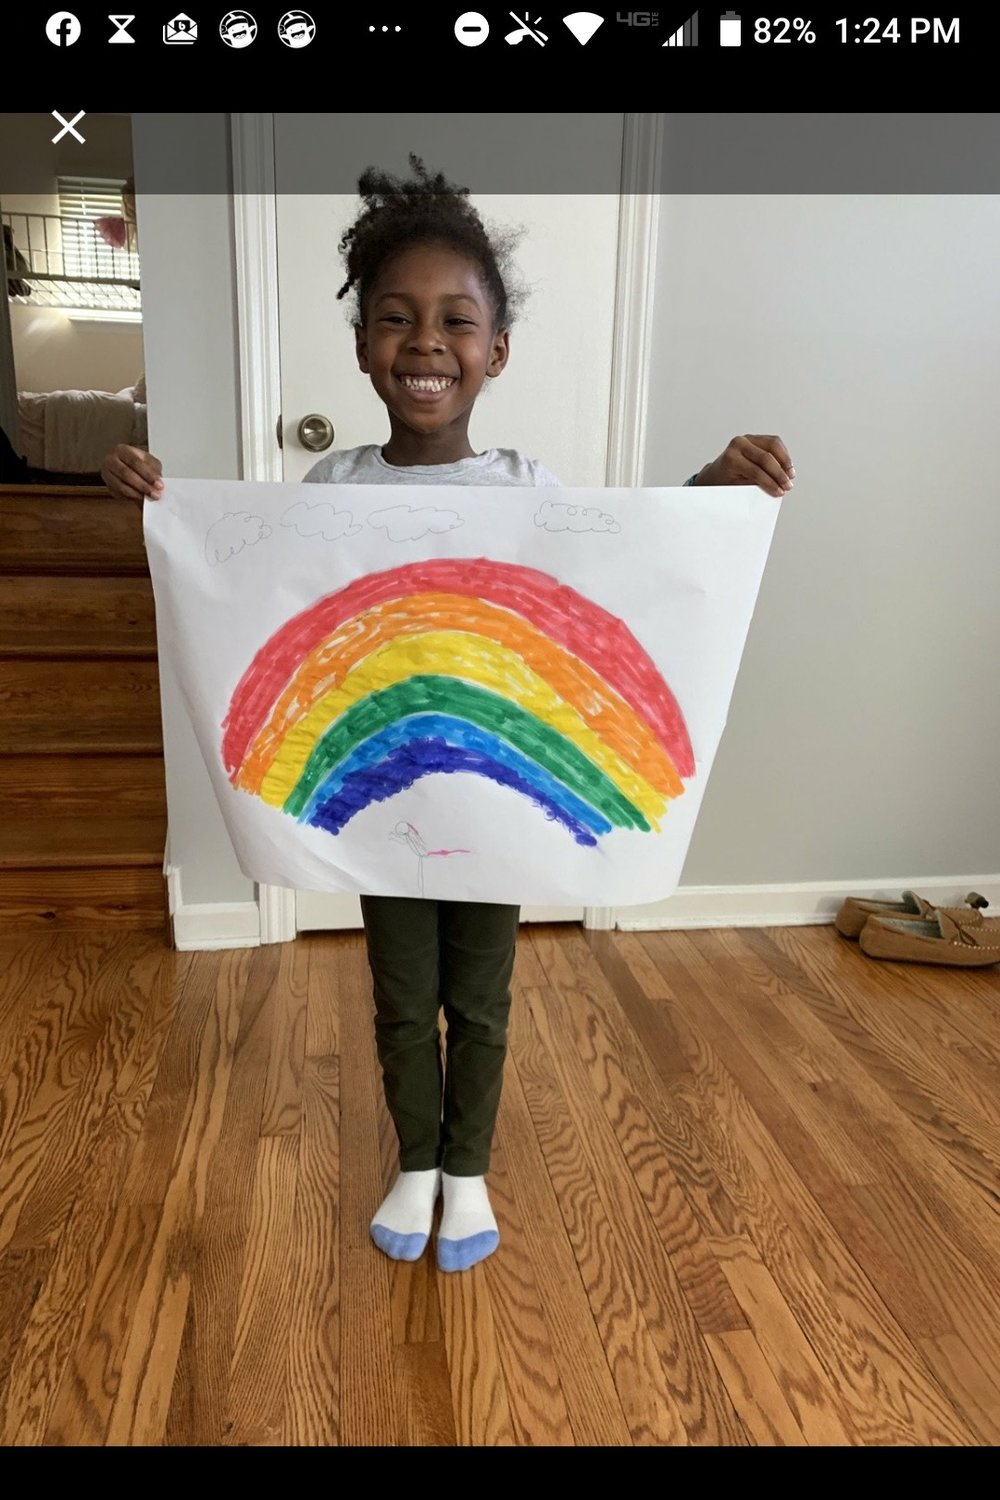 Isabelle Sammy, one of Wilder's students, below, crafted her own rainbow and walked around the neighborhood to find more.